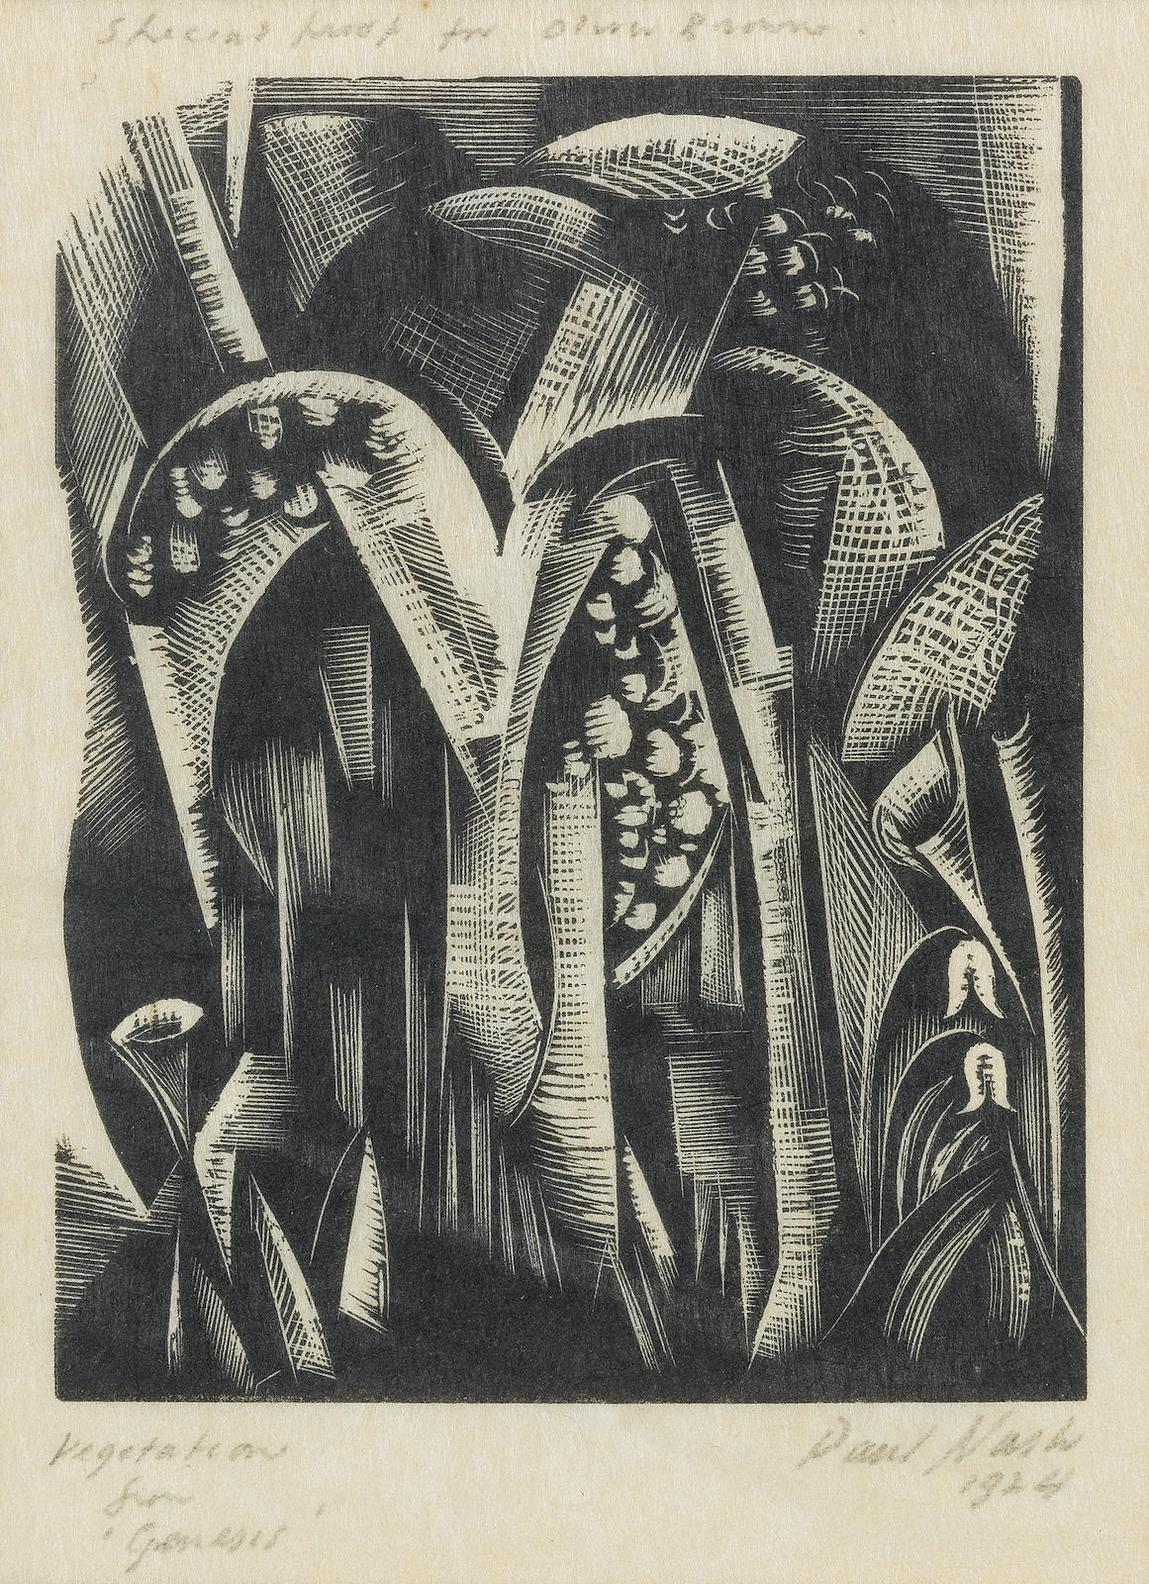 Paul Nash-Vegetation, From Genesis (Postanw47); Elms (PW6)-1924